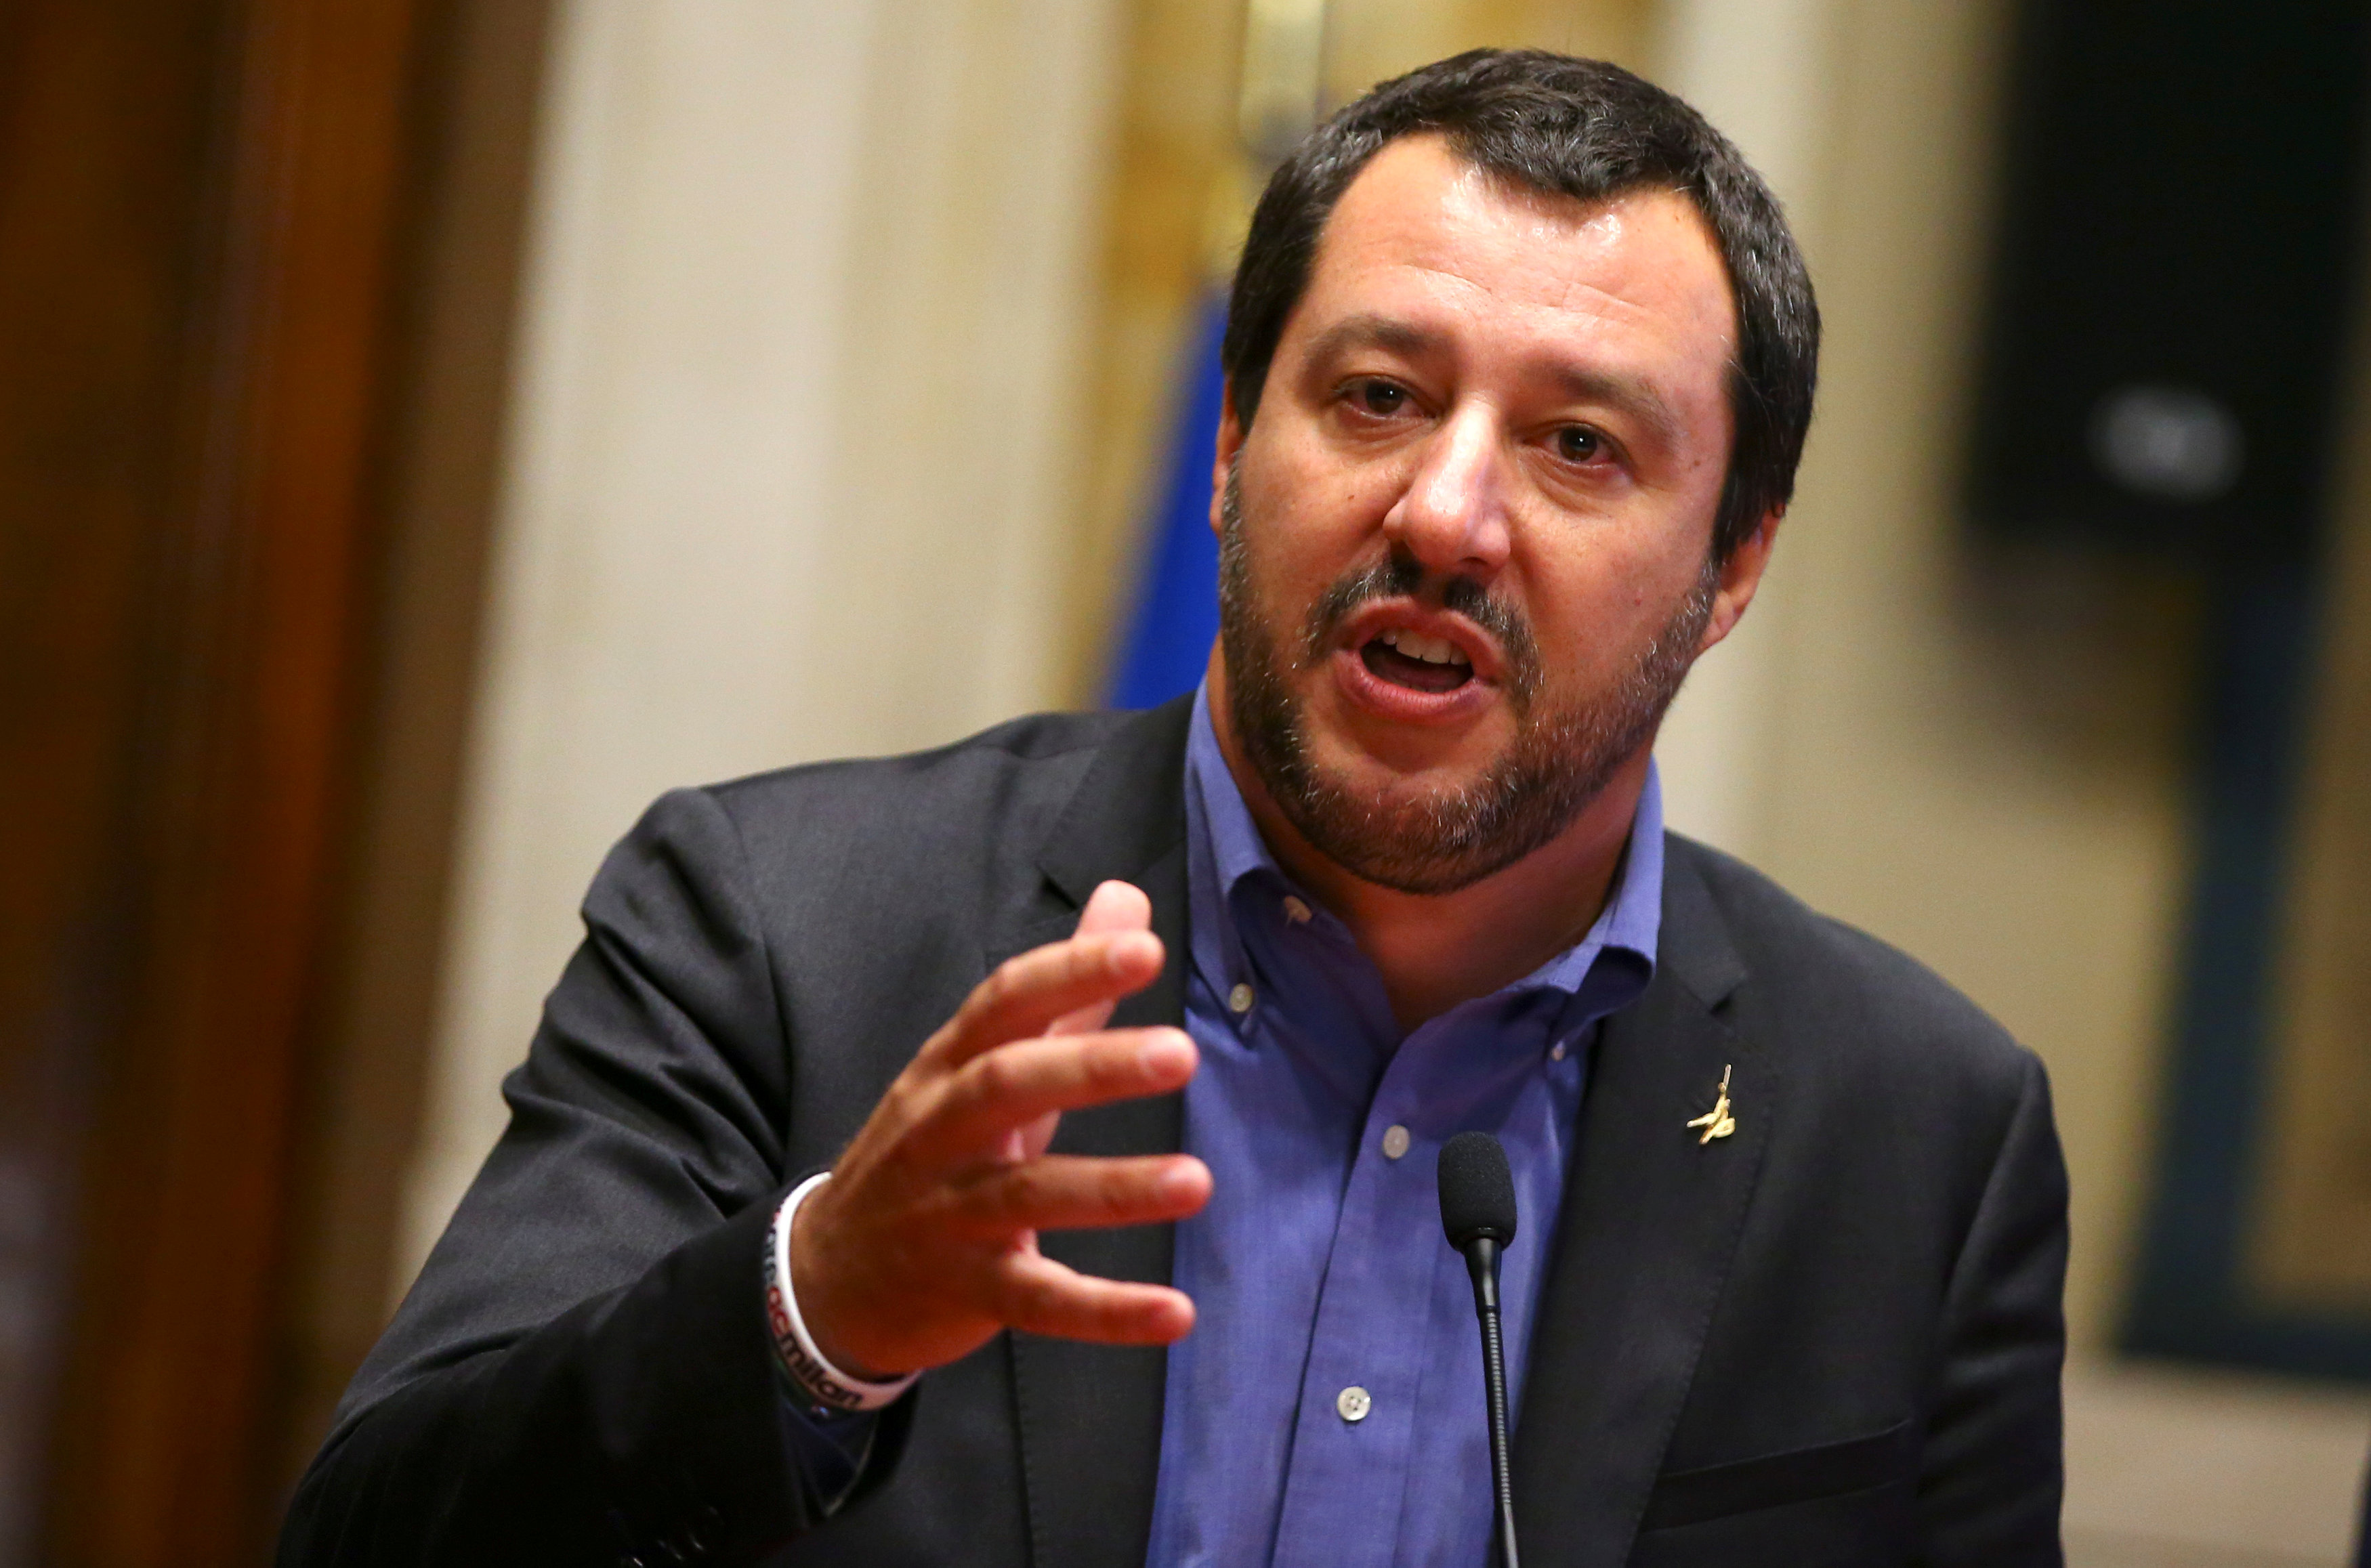 FILE PHOTO: League party leader Matteo Salvini speaks at the media after a round of consultations with Italy's newly appointed Prime Minister Giuseppe Conte at the Lower House in Rome